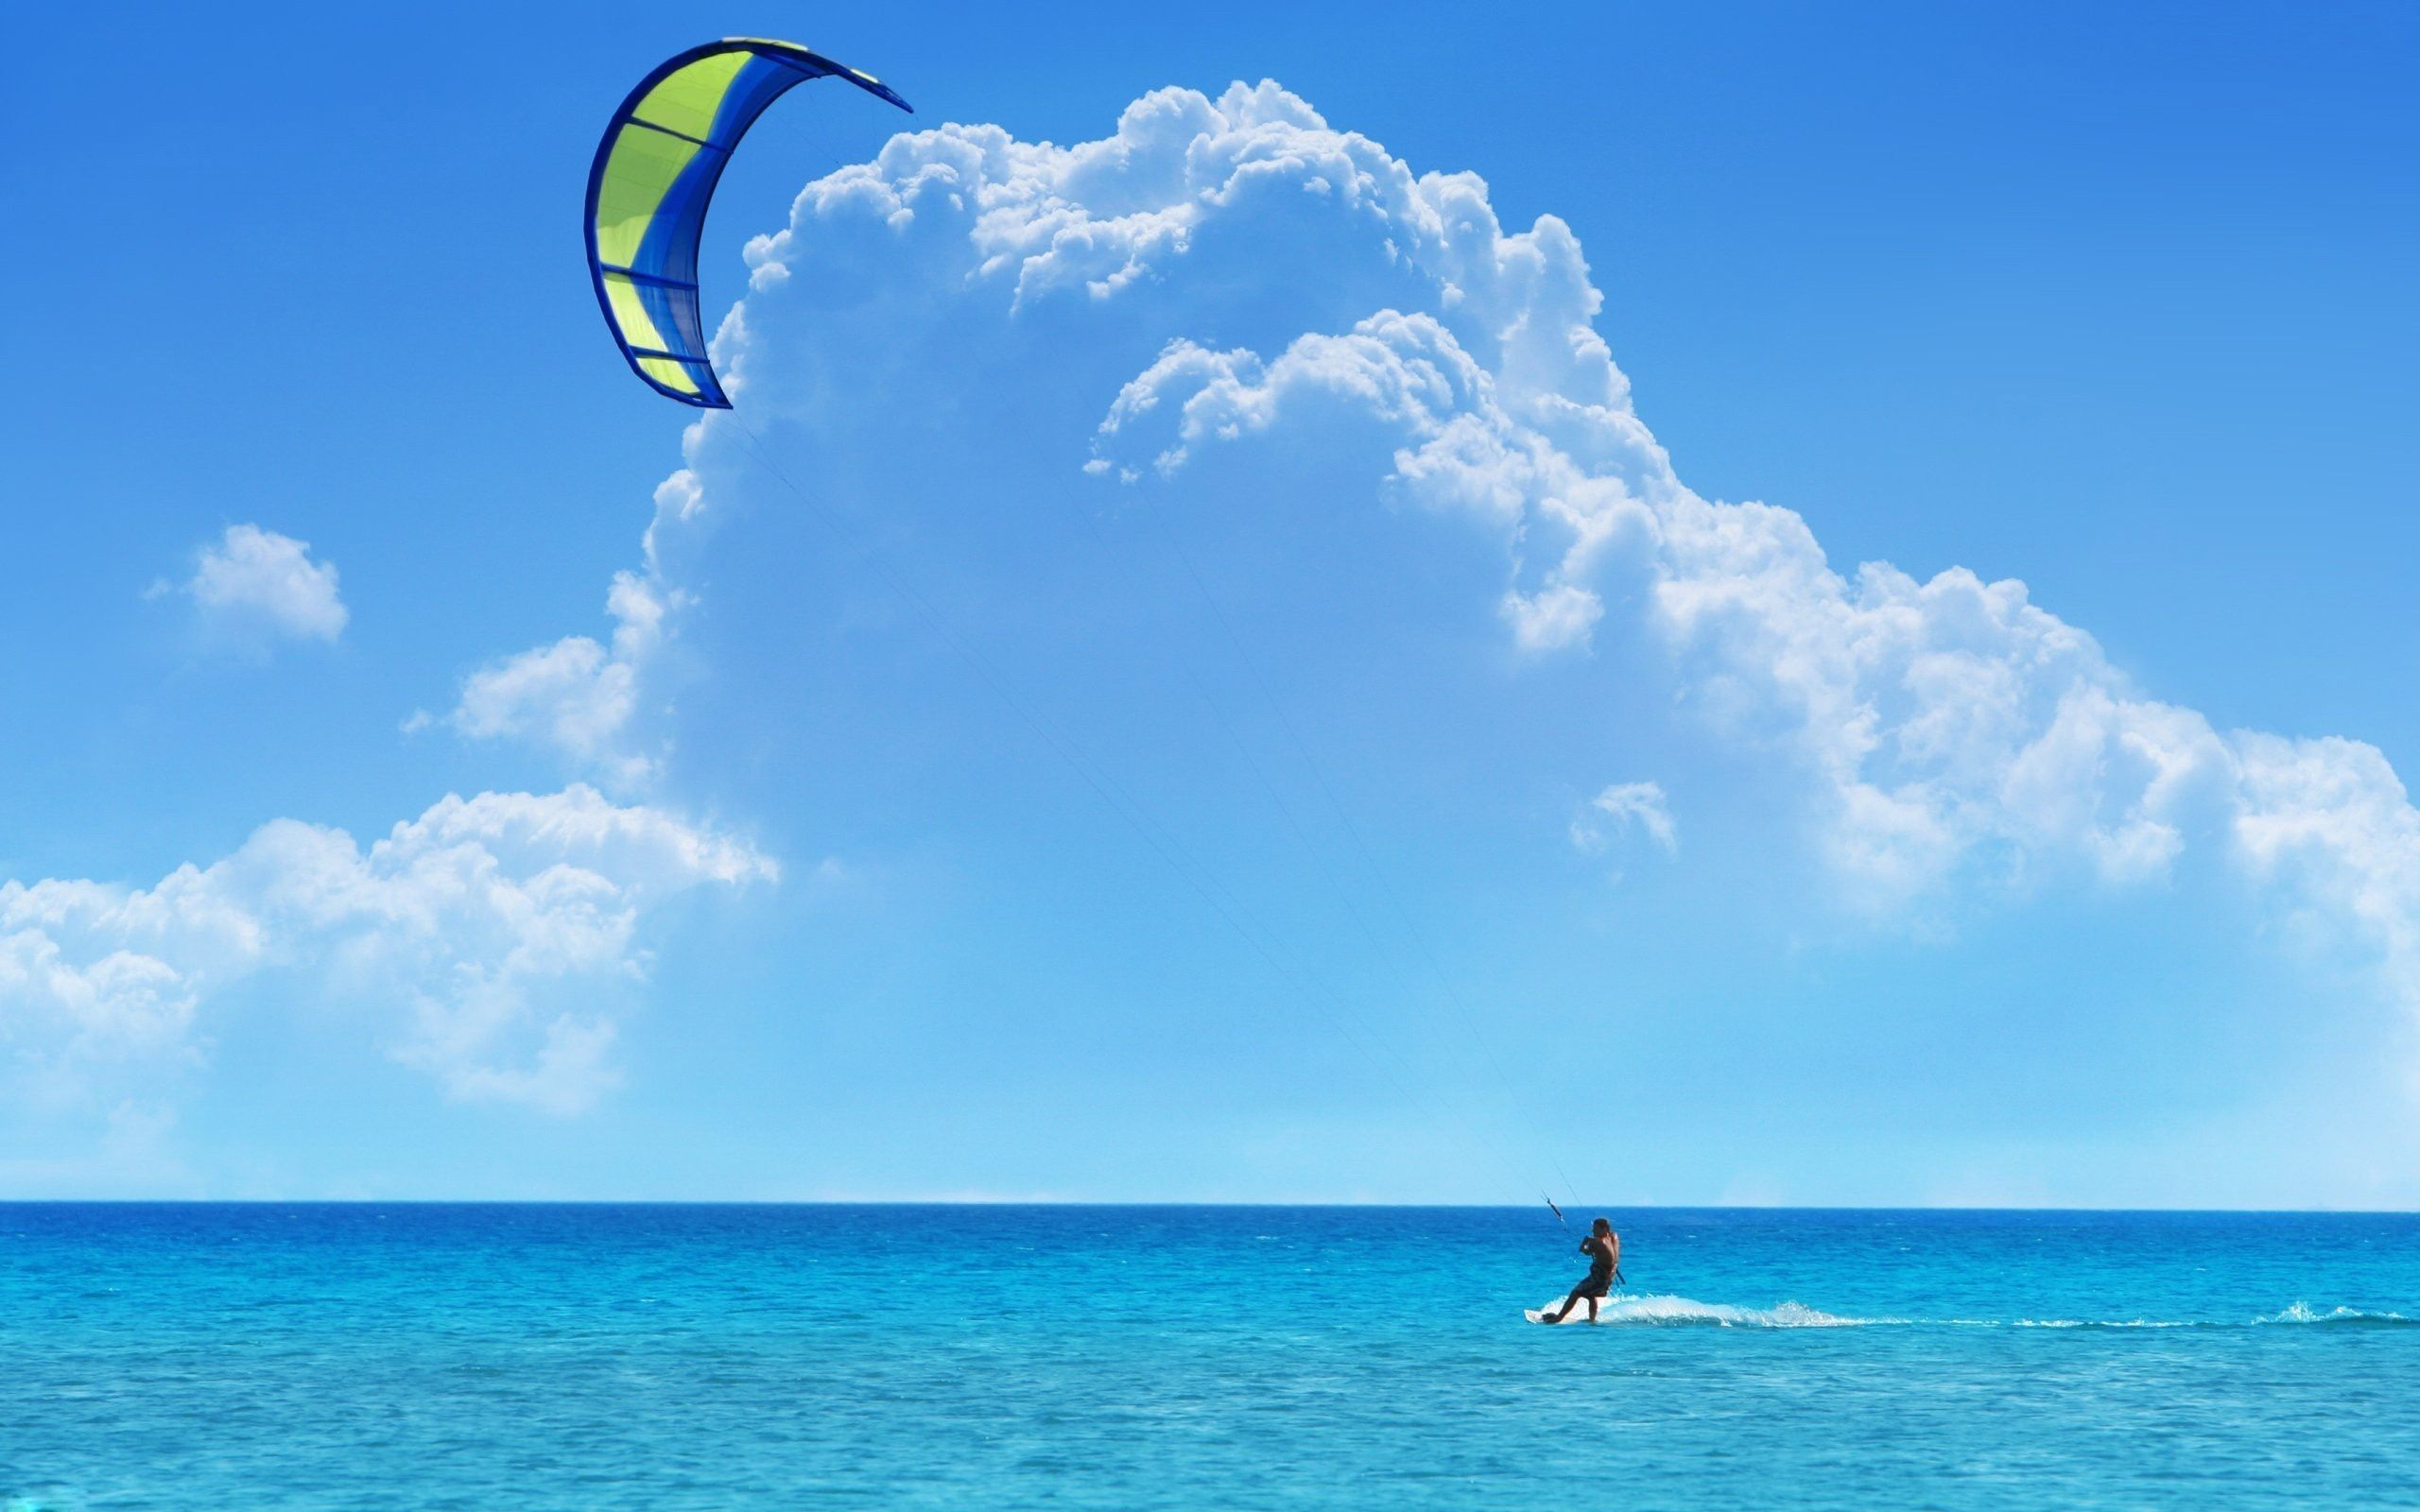 2560x1600 - Kitesurfing Wallpapers 20